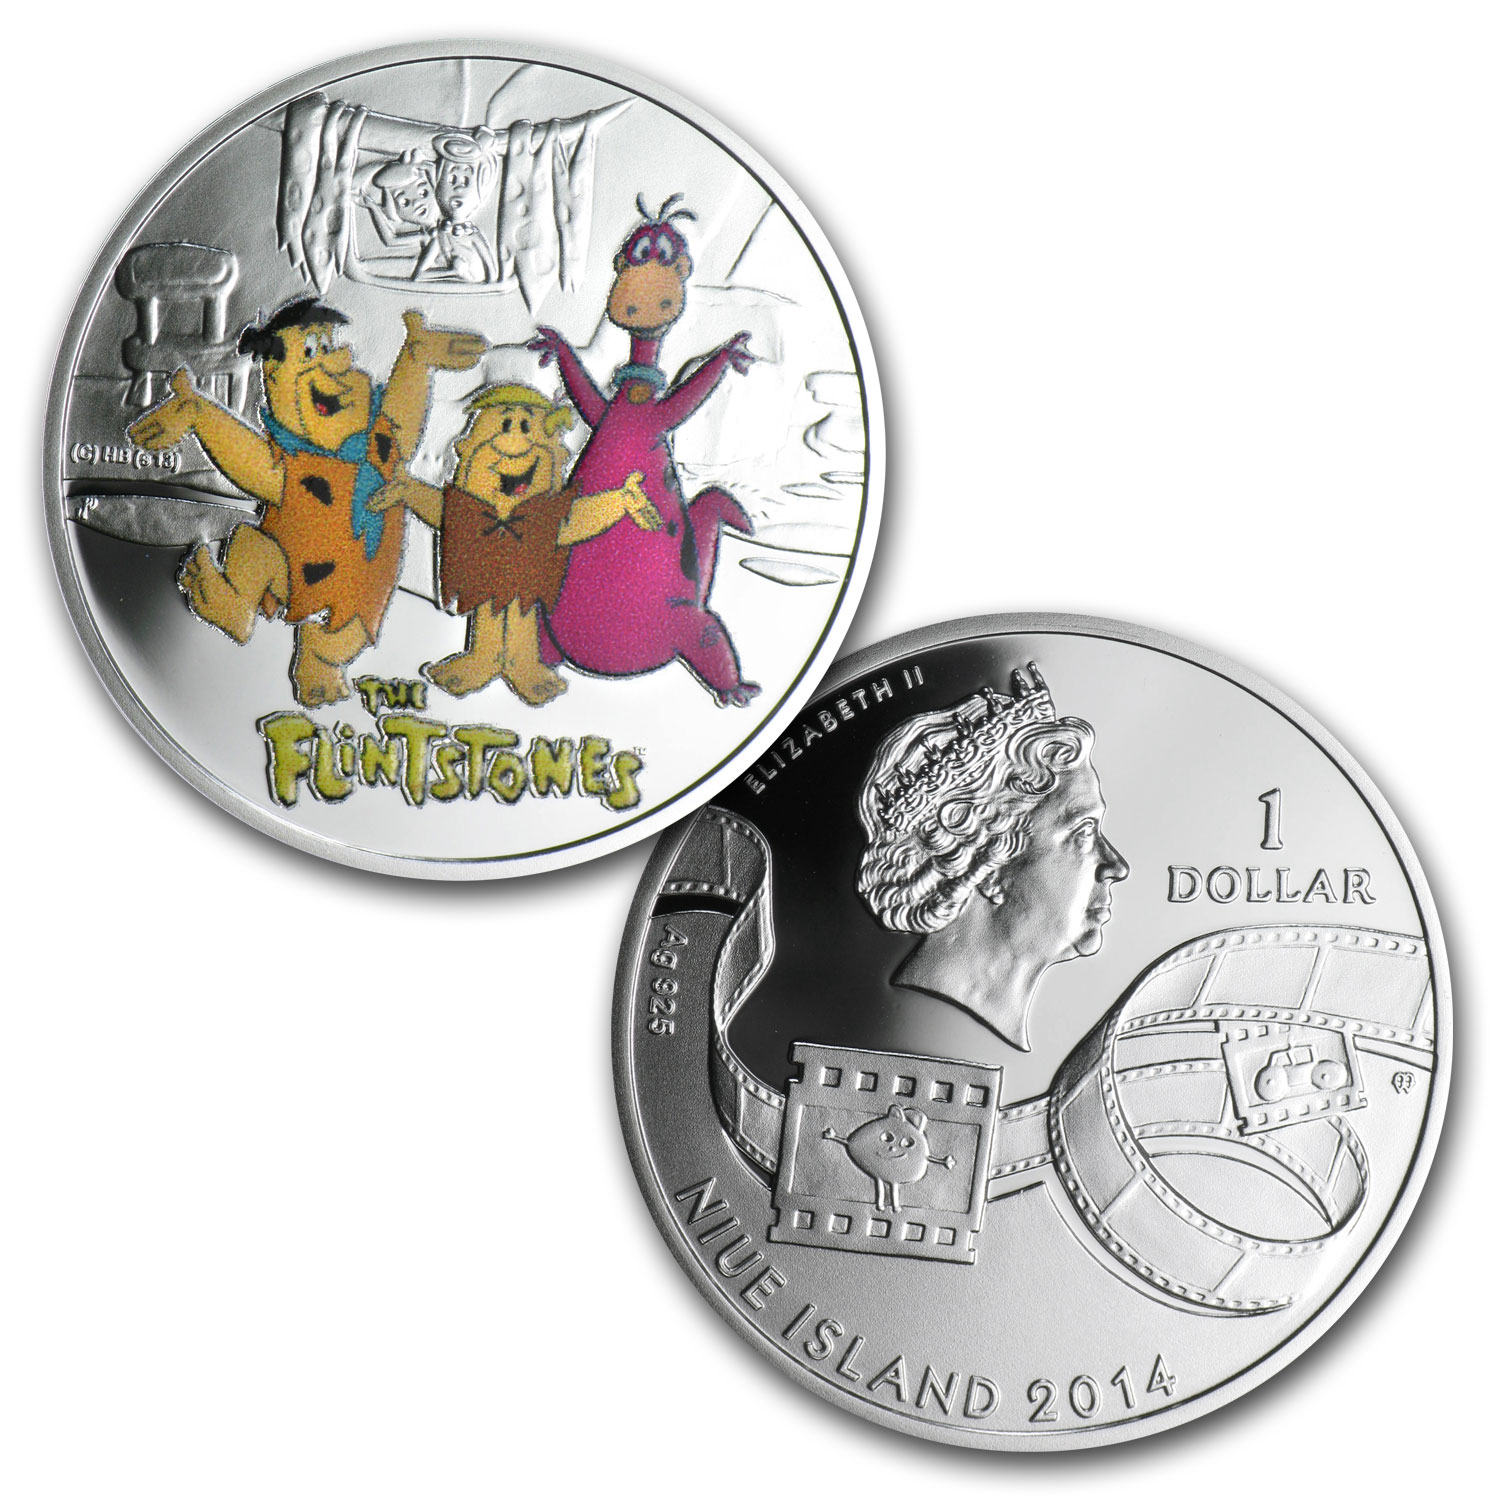 2014 Niue Proof Silver $1 Cartoon Characters Flintstones